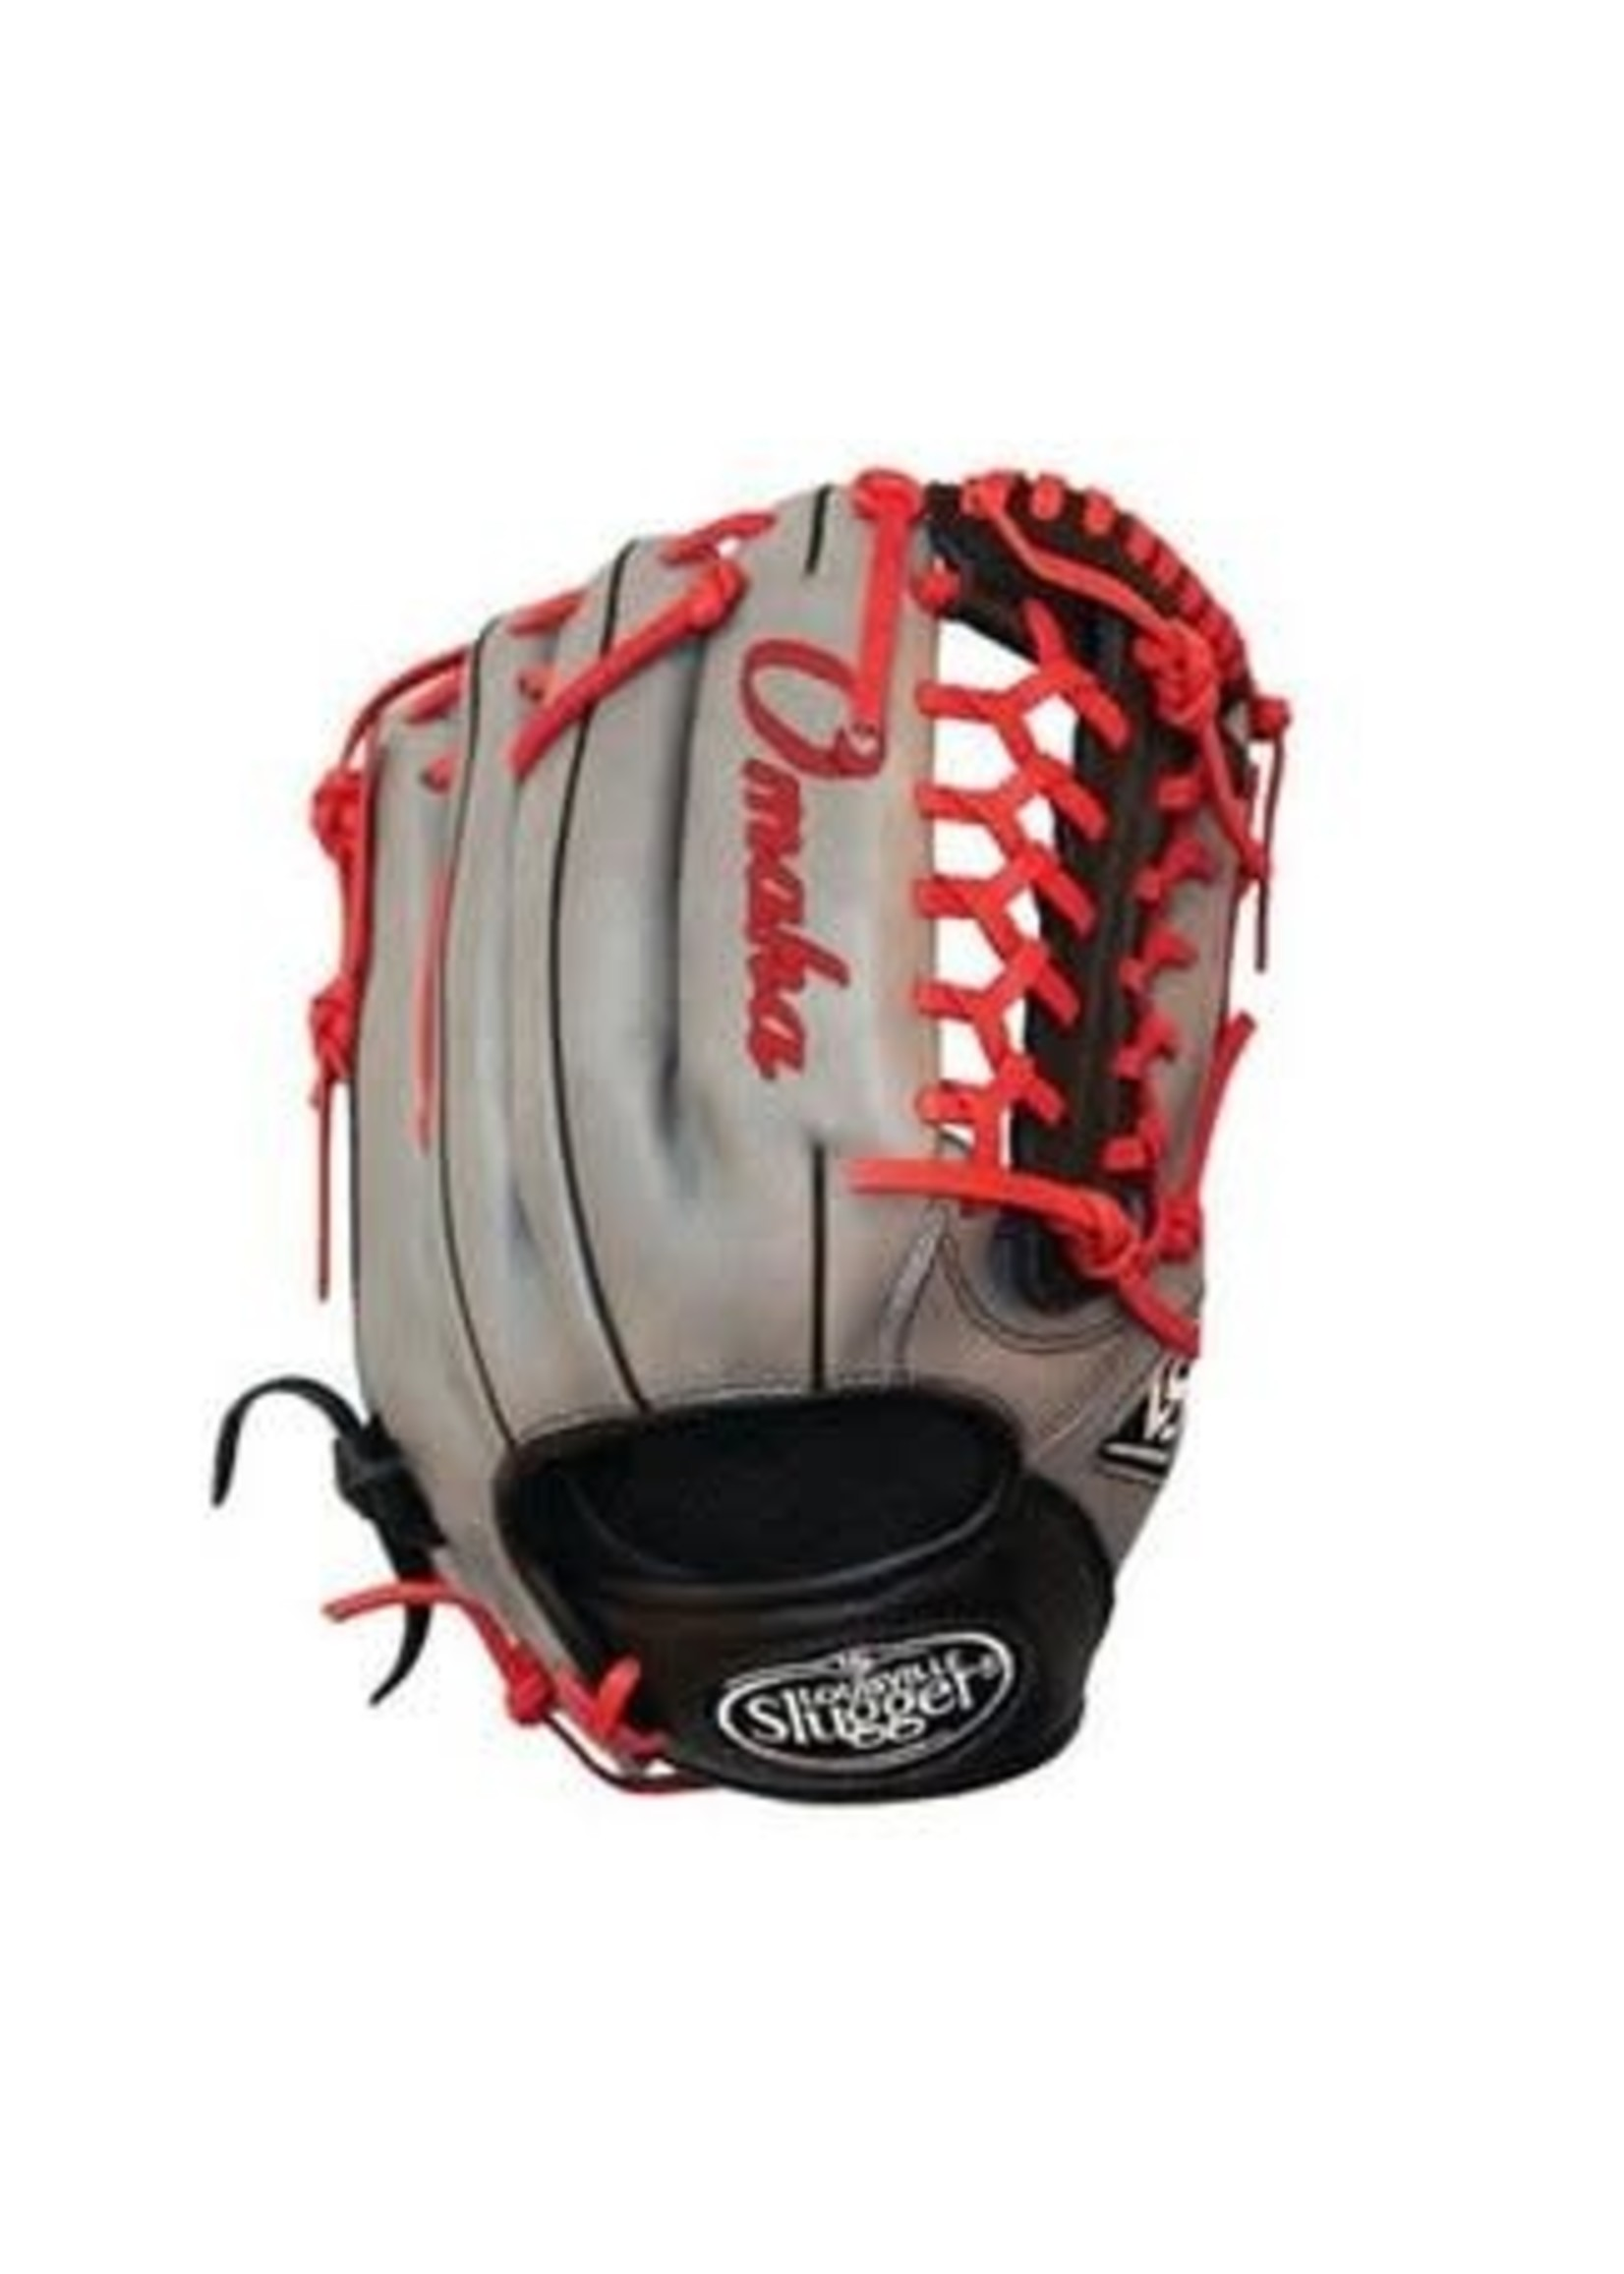 Louisville (Canada) LS LOUISVILLE SLUGGER FIELDING GLOVES  BASEBALL OMAHA FIELDING GLOVE 11.75 REG STEEL GRAY-BLACK-RED